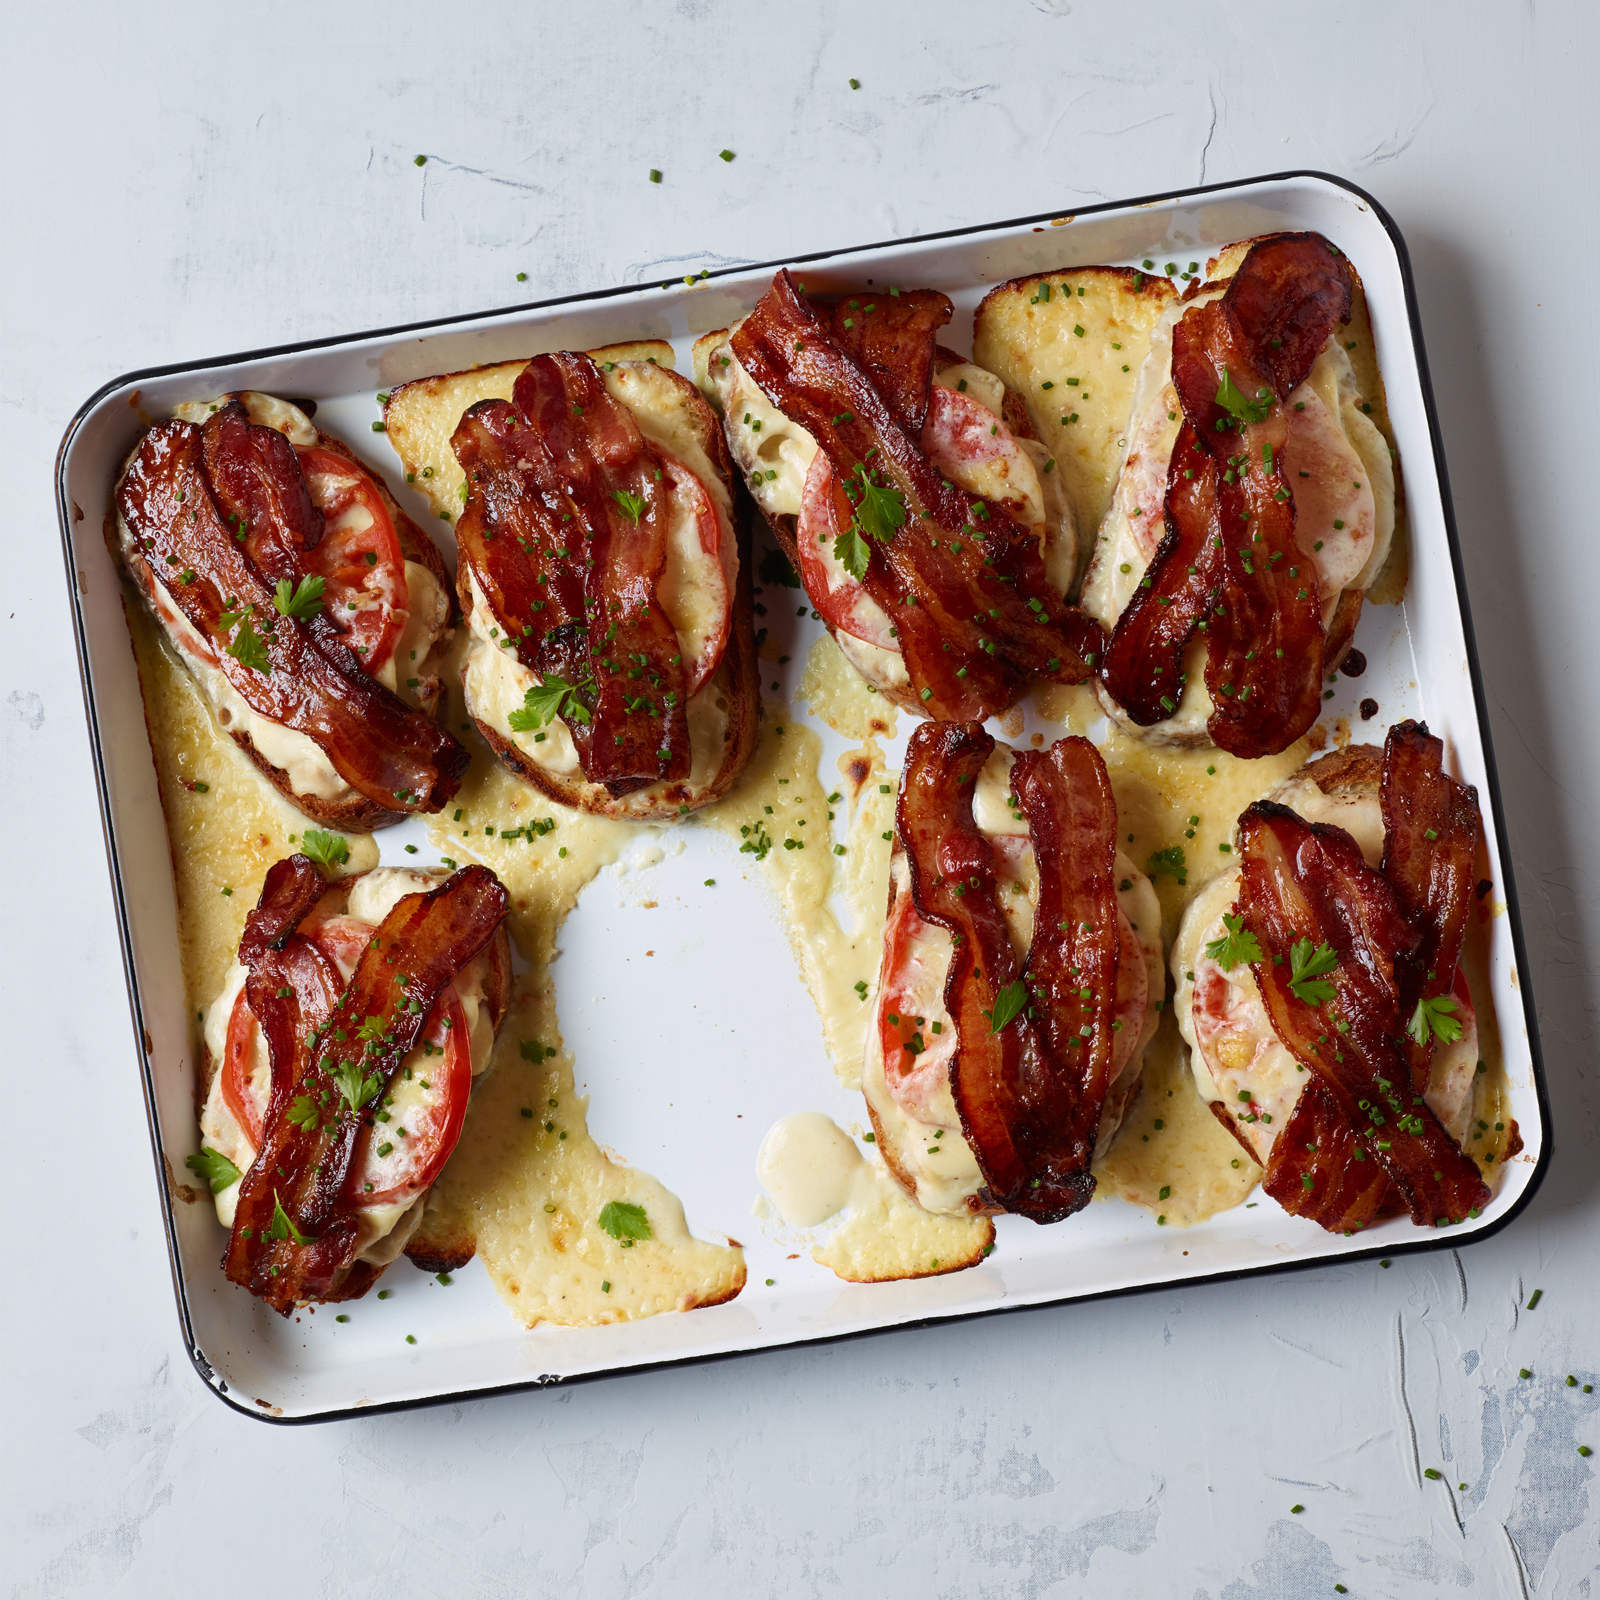 Kentucky Hot Brown Recipe - Bobby Flay